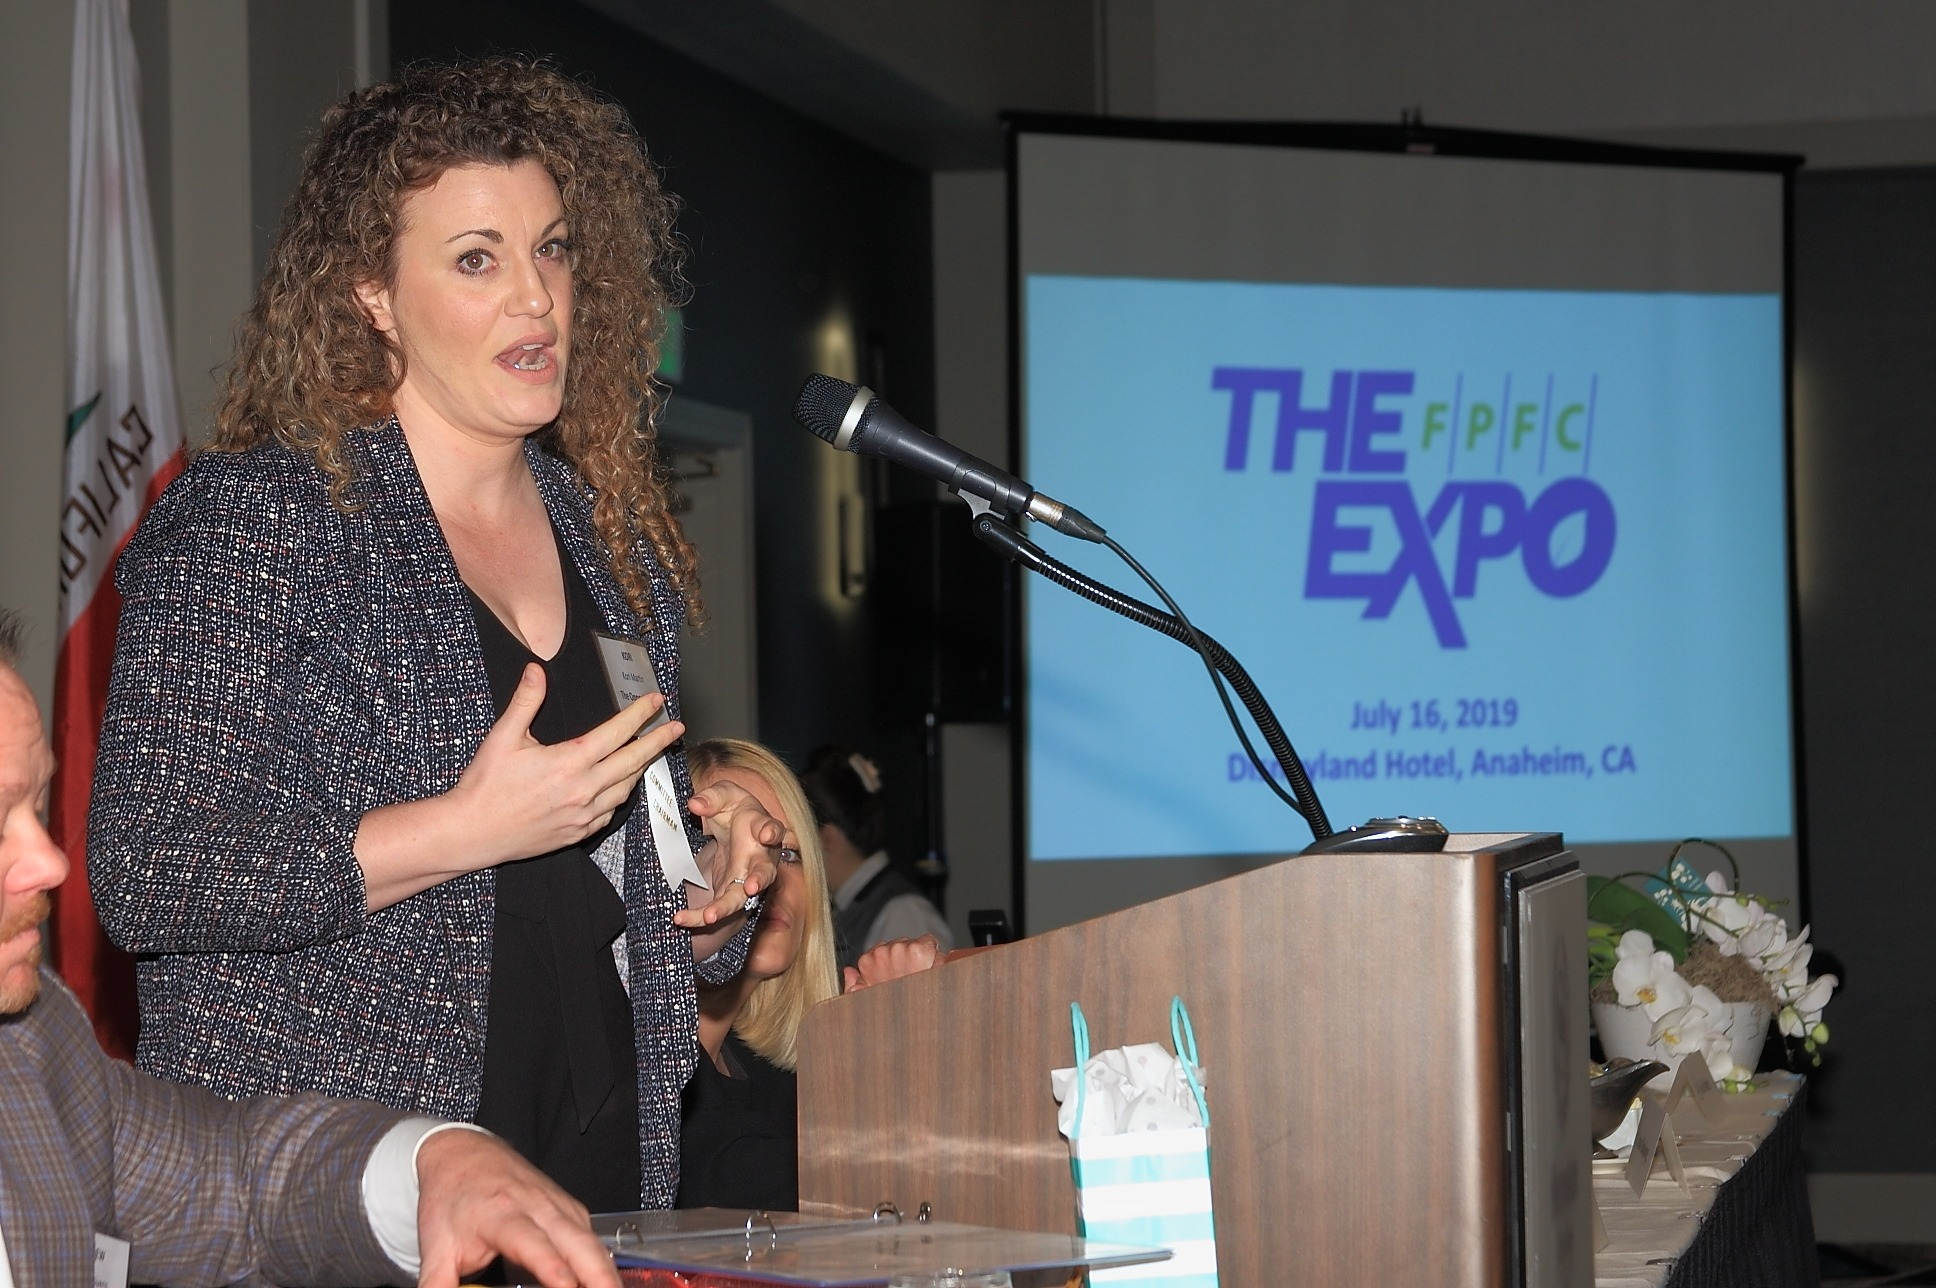 Expo Chair Kori Martin of The Oppenheimer Group discussed the changes at The FPFC Expo